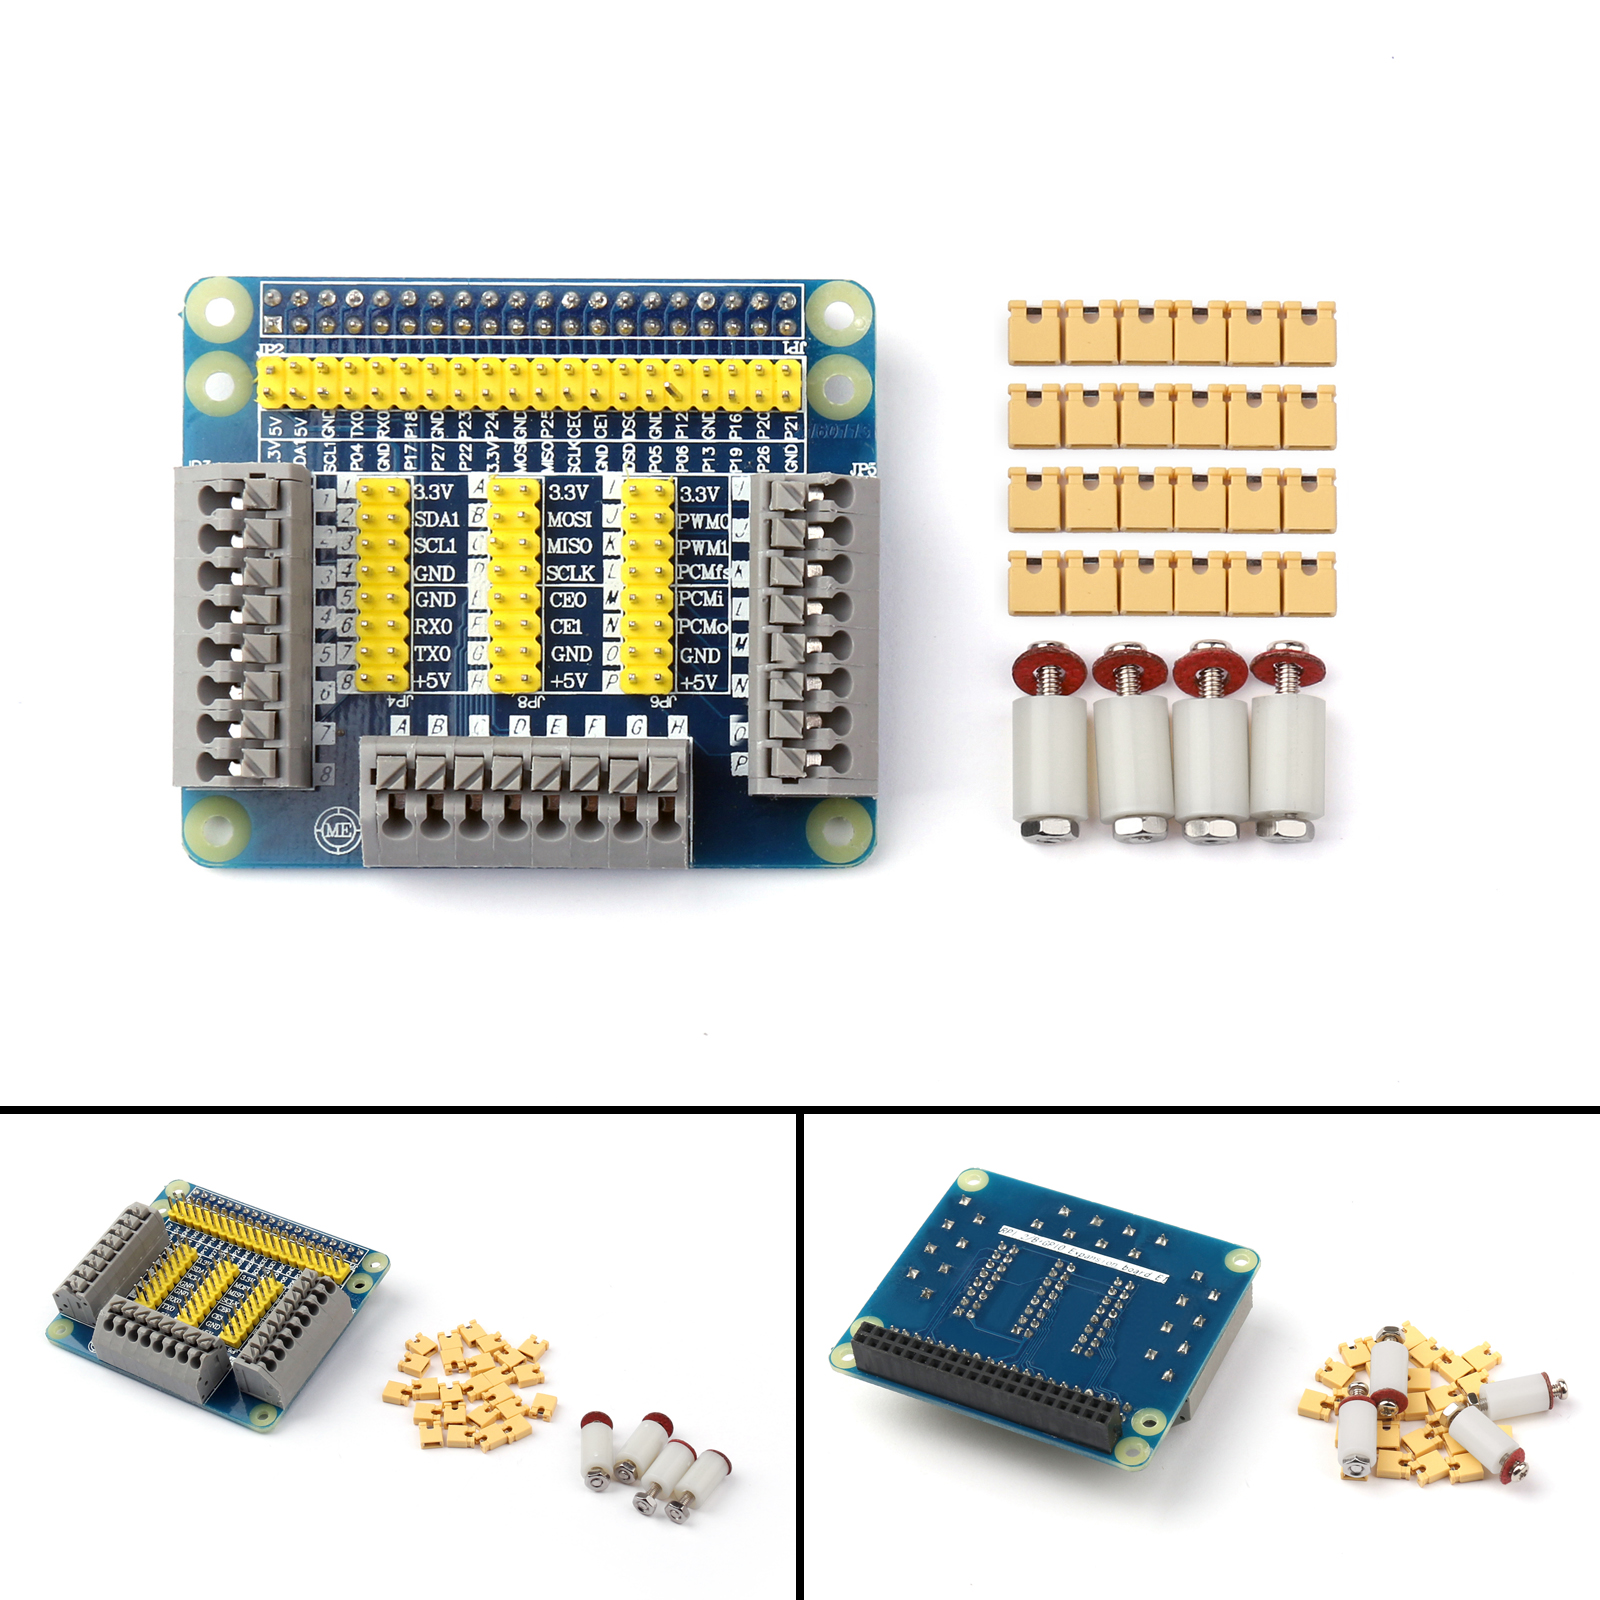 1x Multifunction High Quality GPIO Expansion Board For Raspberry PI 2 3 Model B